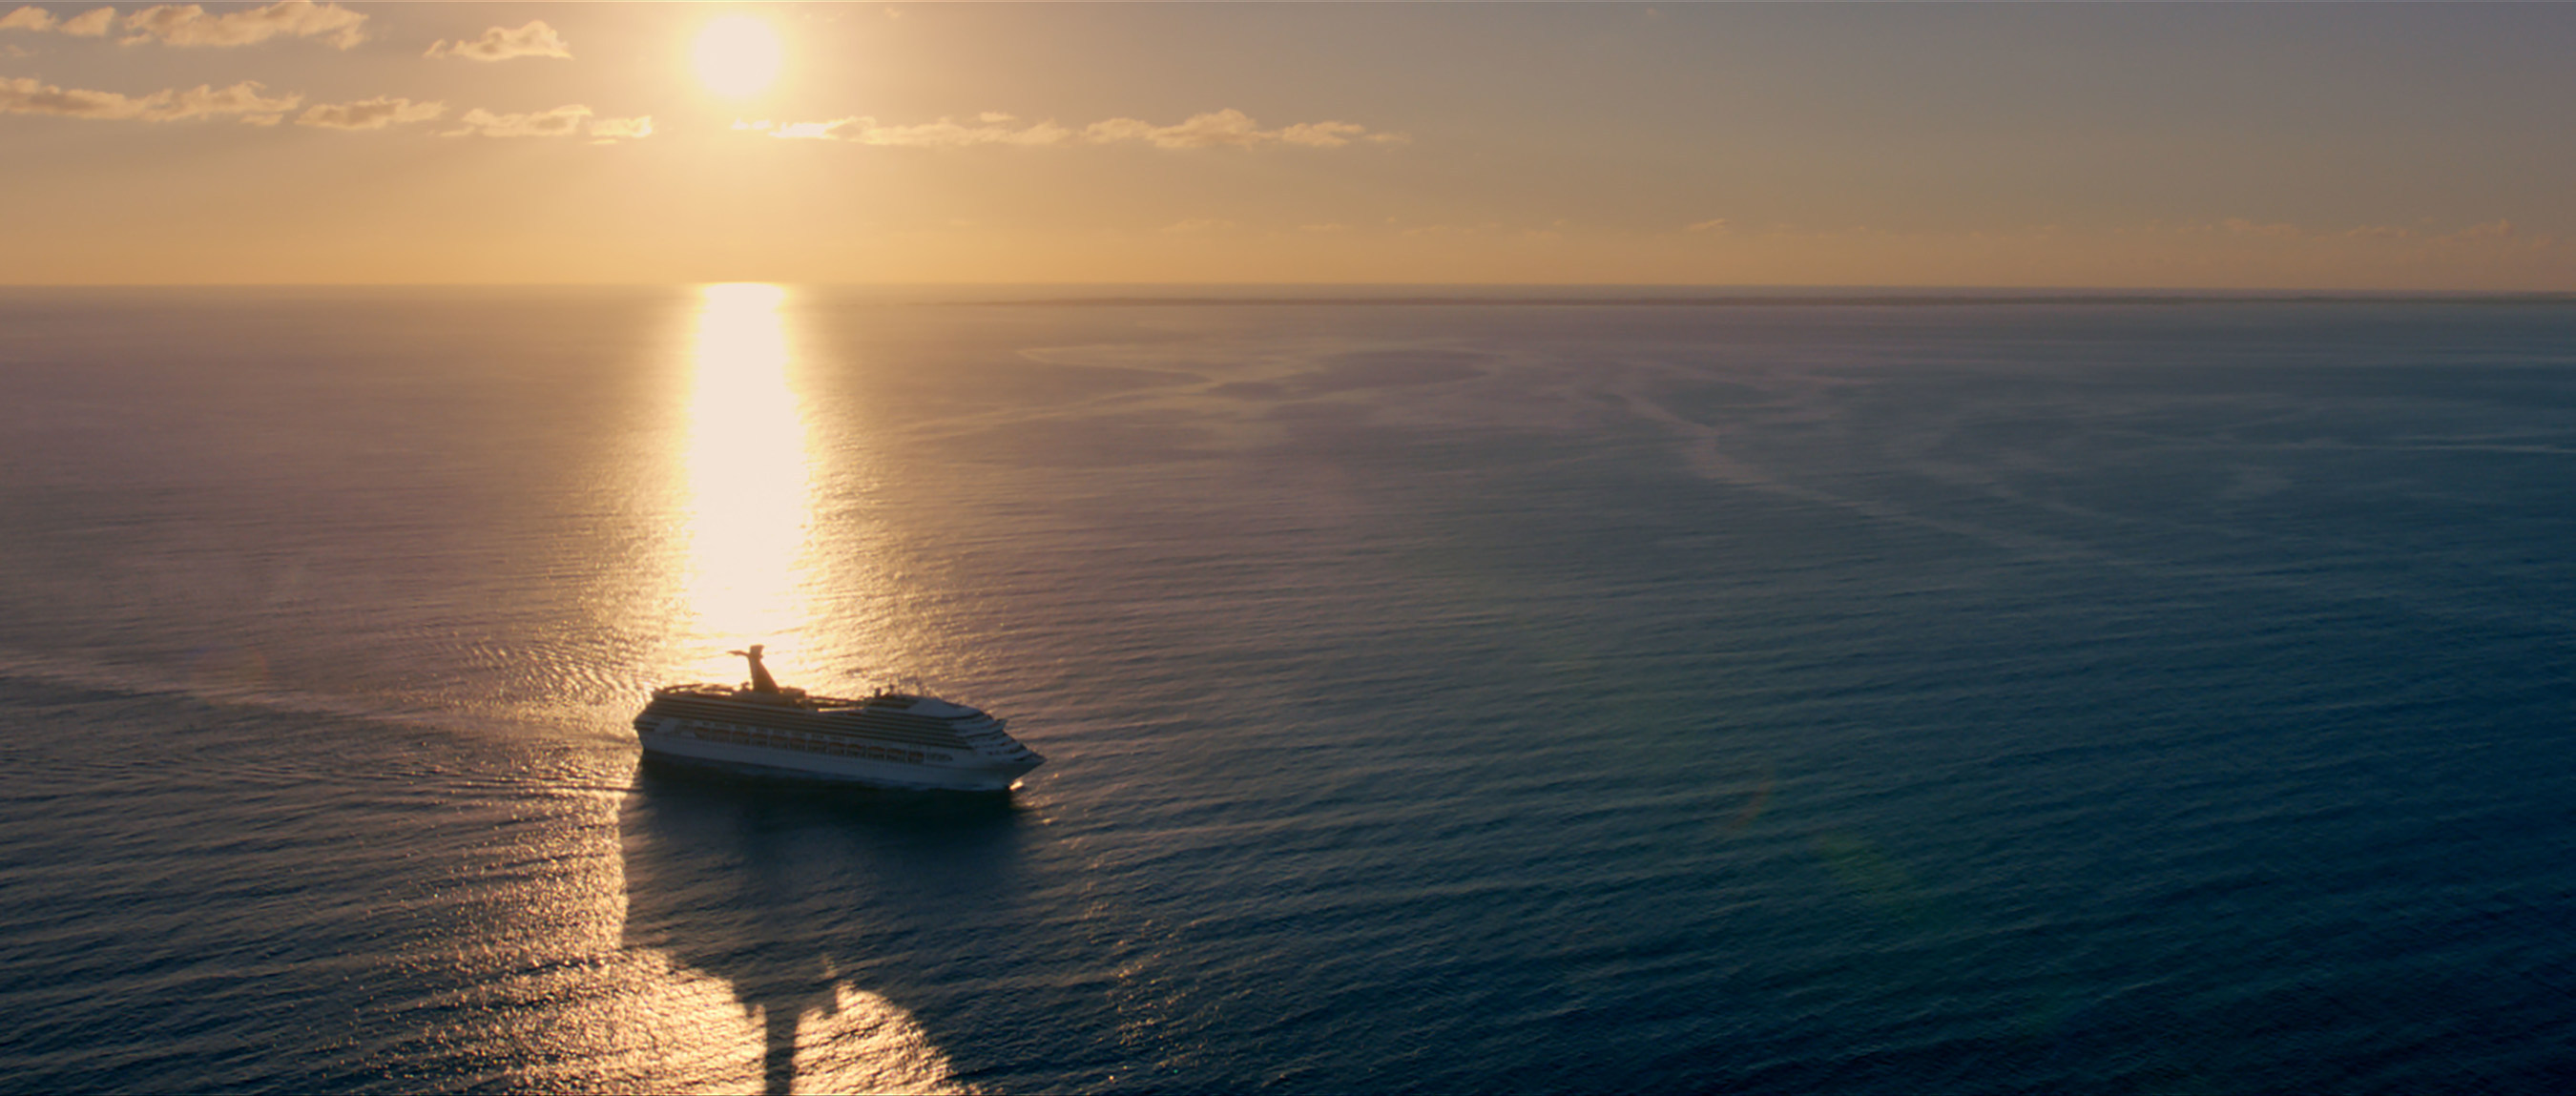 """Carnival Corporation & plc, the world's largest travel and leisure company, tonight aired its first-ever Super Bowl TV commercial entitled """"Come Back to the Sea"""" - a 60-second spot combining stunning cinematic images of the ocean and stirring words from President John F. Kennedy to create an emotional storyline about people's universal connection with the sea."""